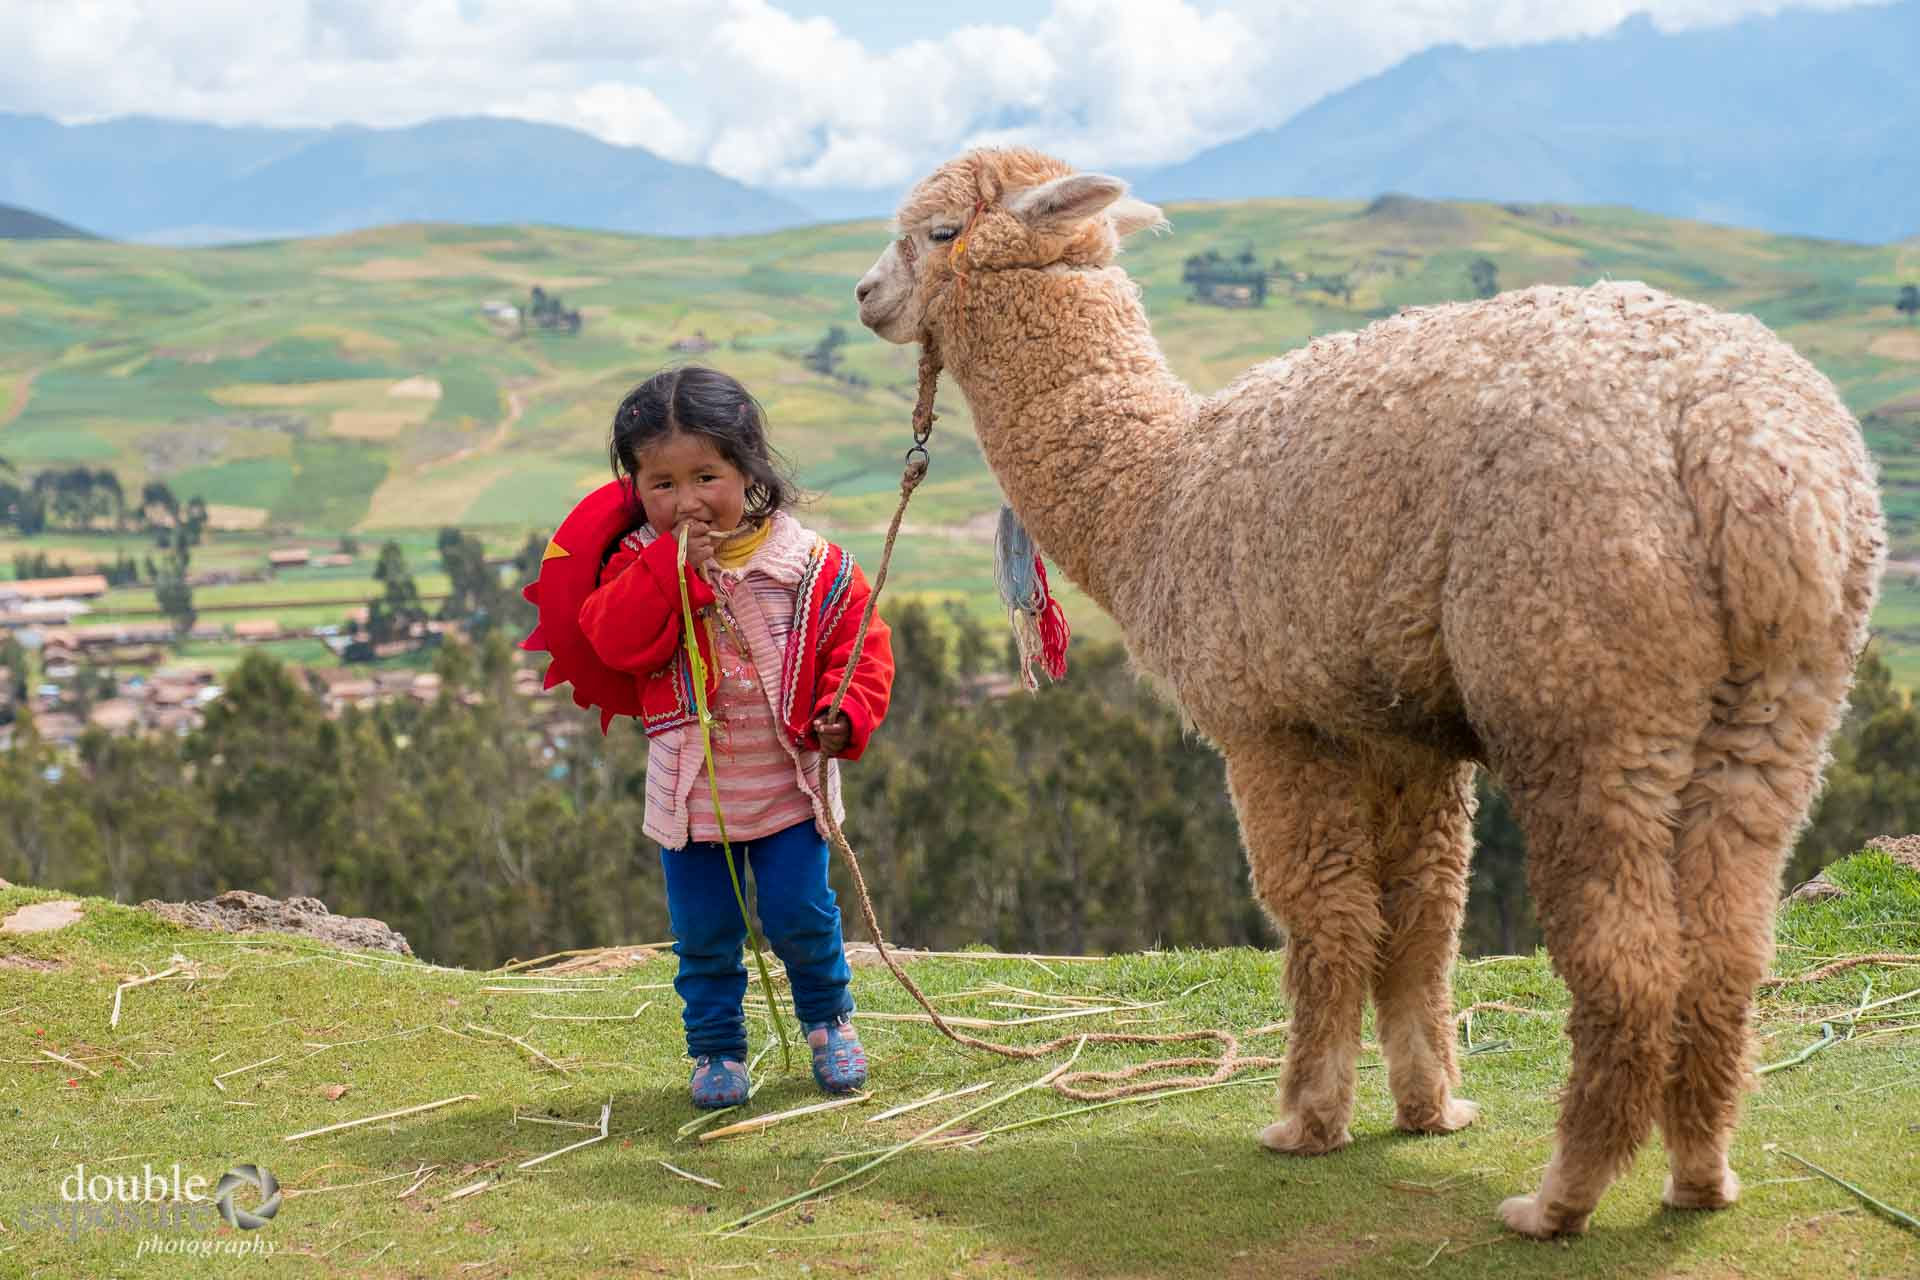 young girl with alpaca in Peru.